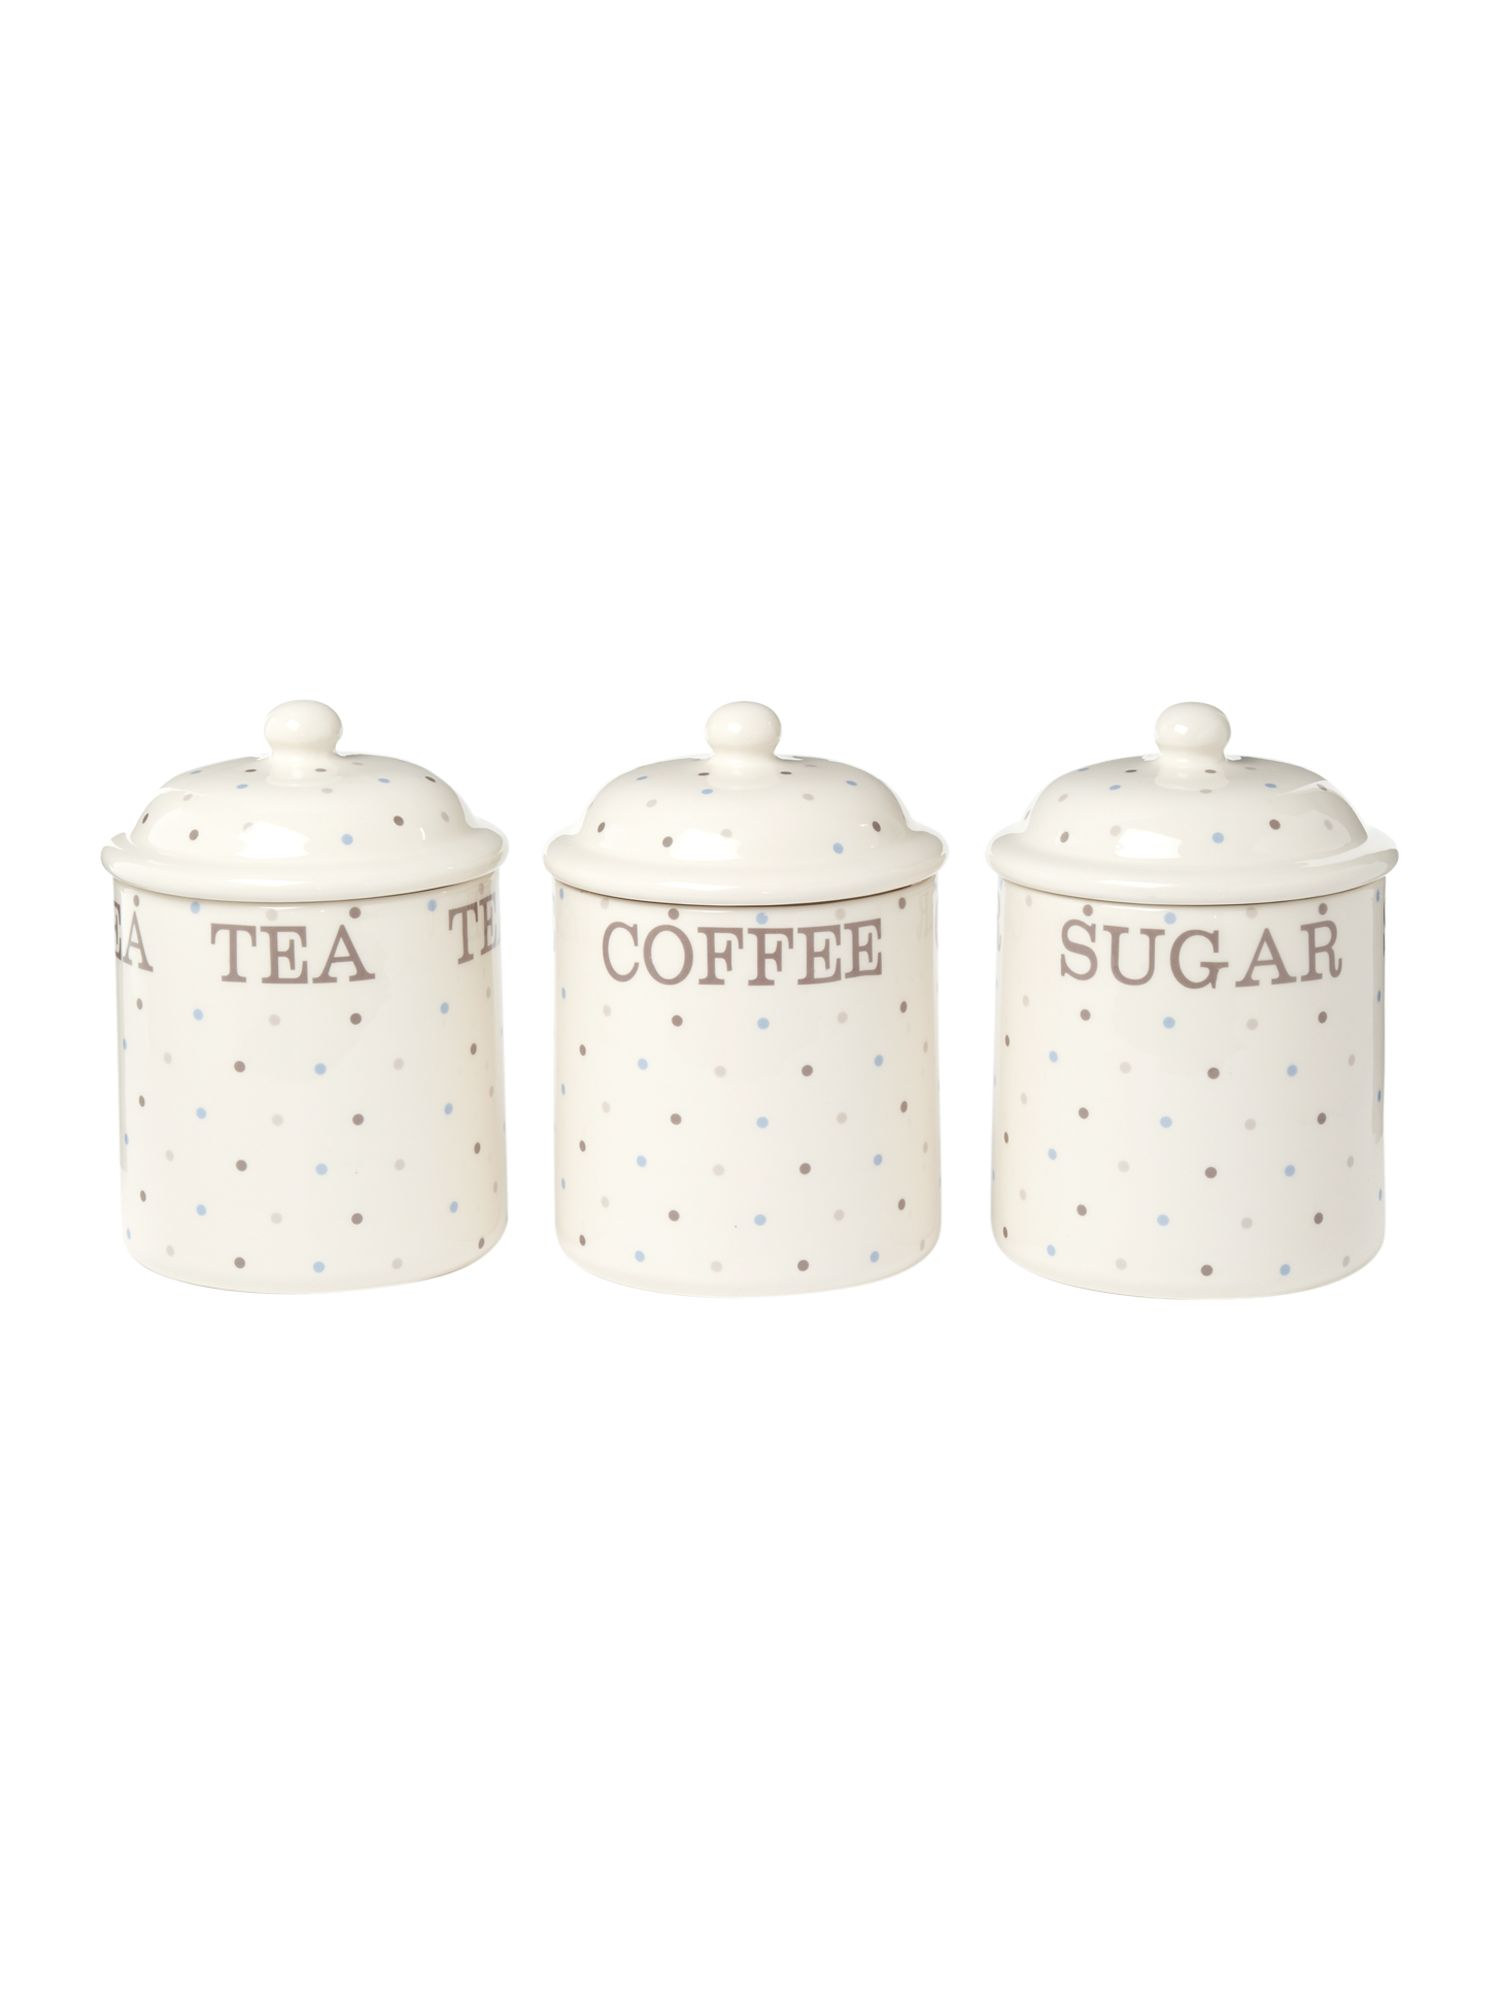 Homespun dotty storage jars